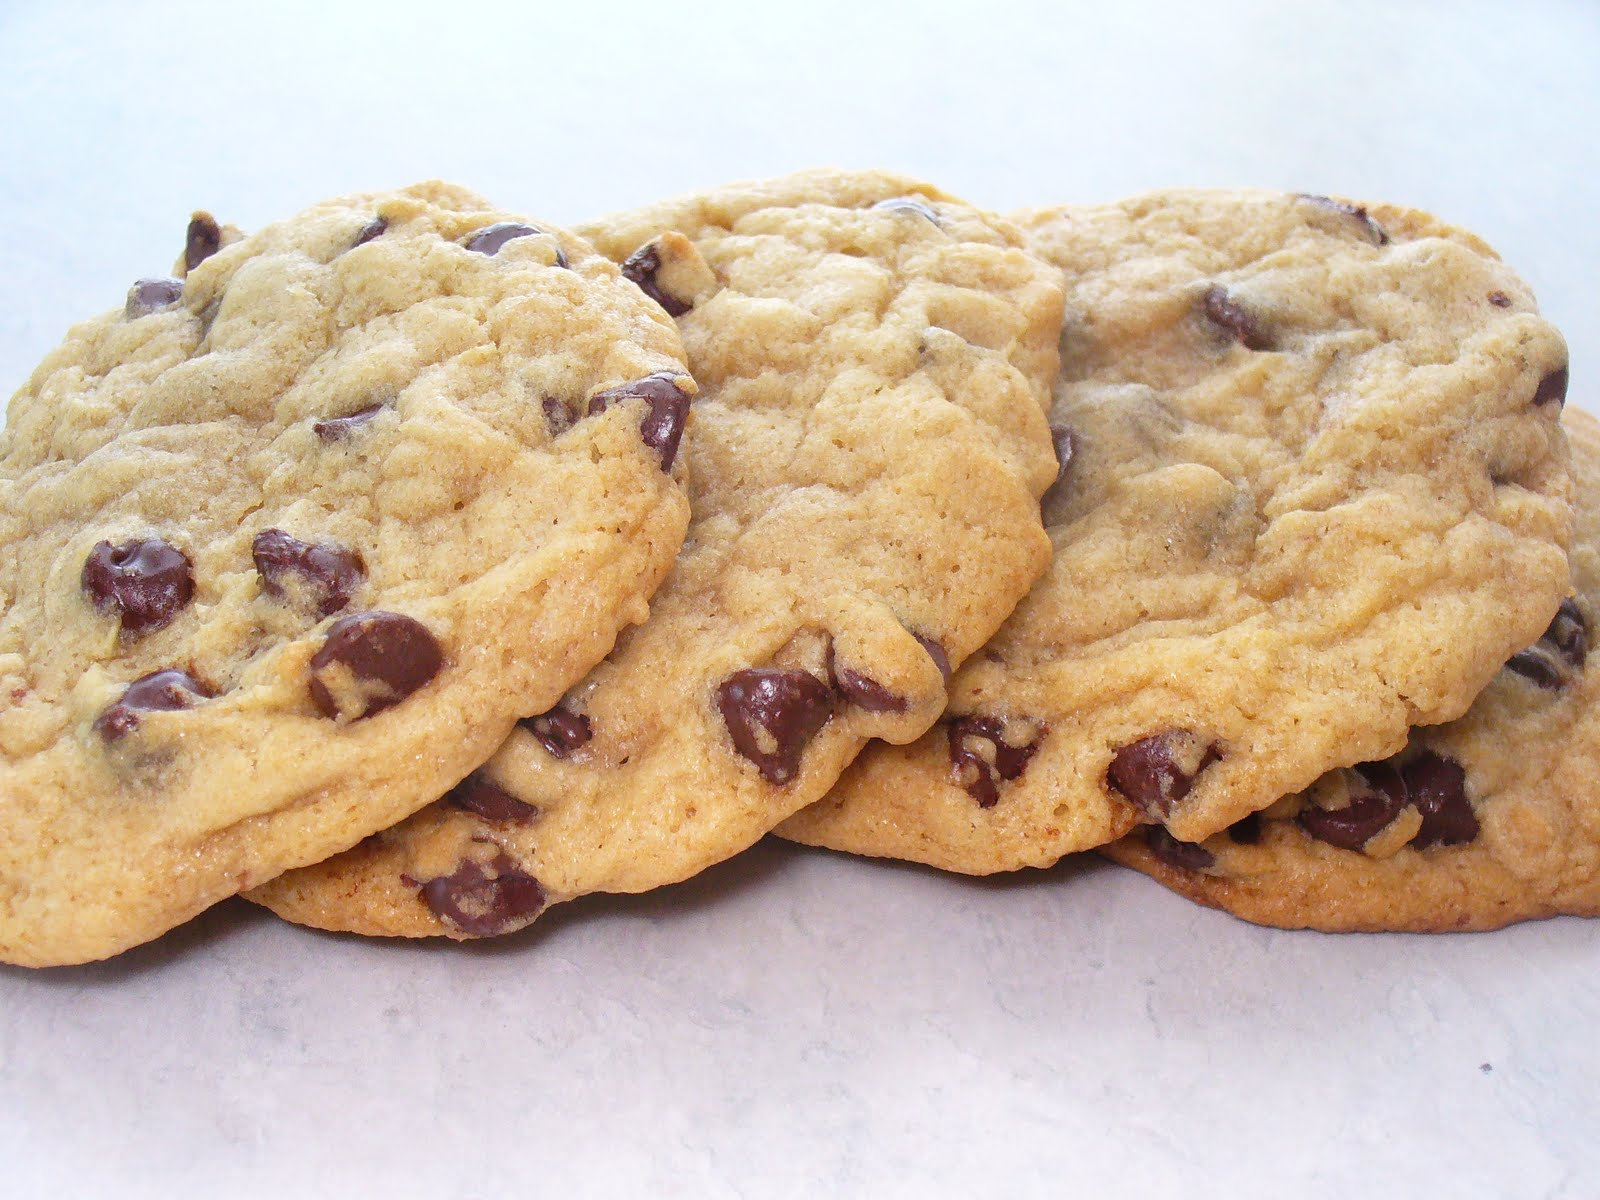 Leenee's Sweetest Delights: Thick and Chewy Chocolate Chip Cookies